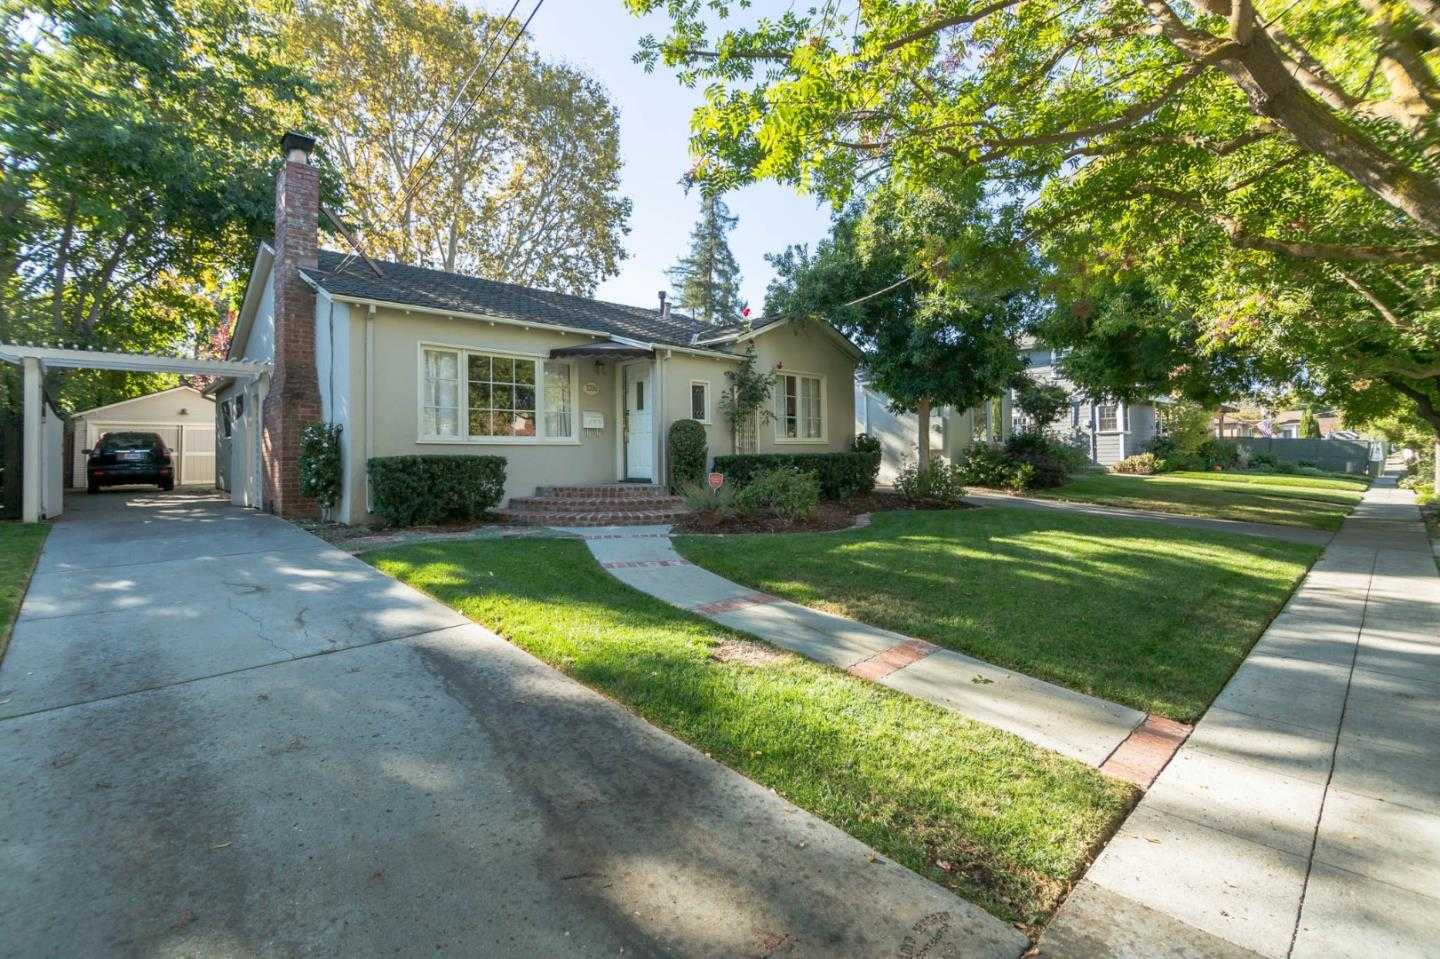 $1,560,000 - 3Br/2Ba -  for Sale in San Jose